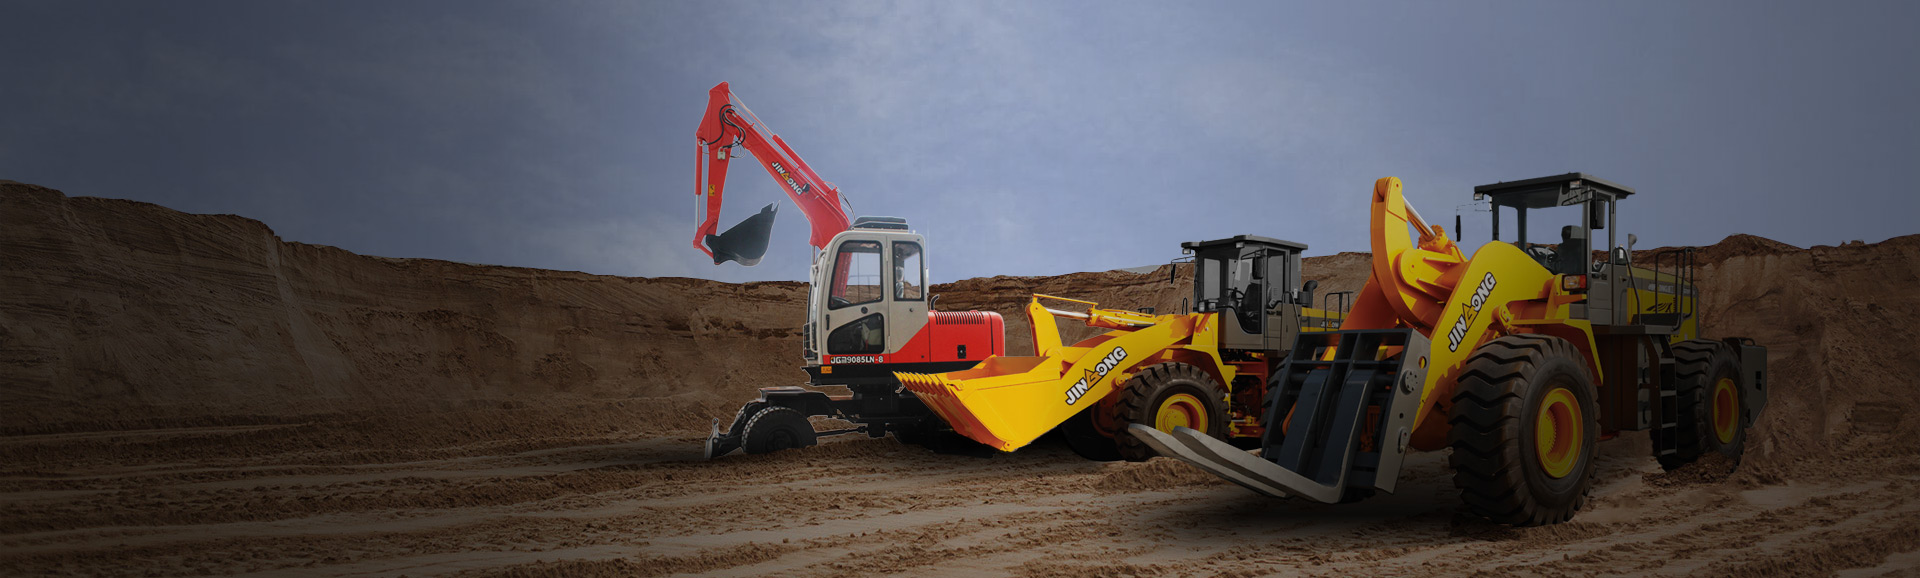 LEADING BRAND IN CHINA CONSTRUCTION MACHINERY INDUSTRY